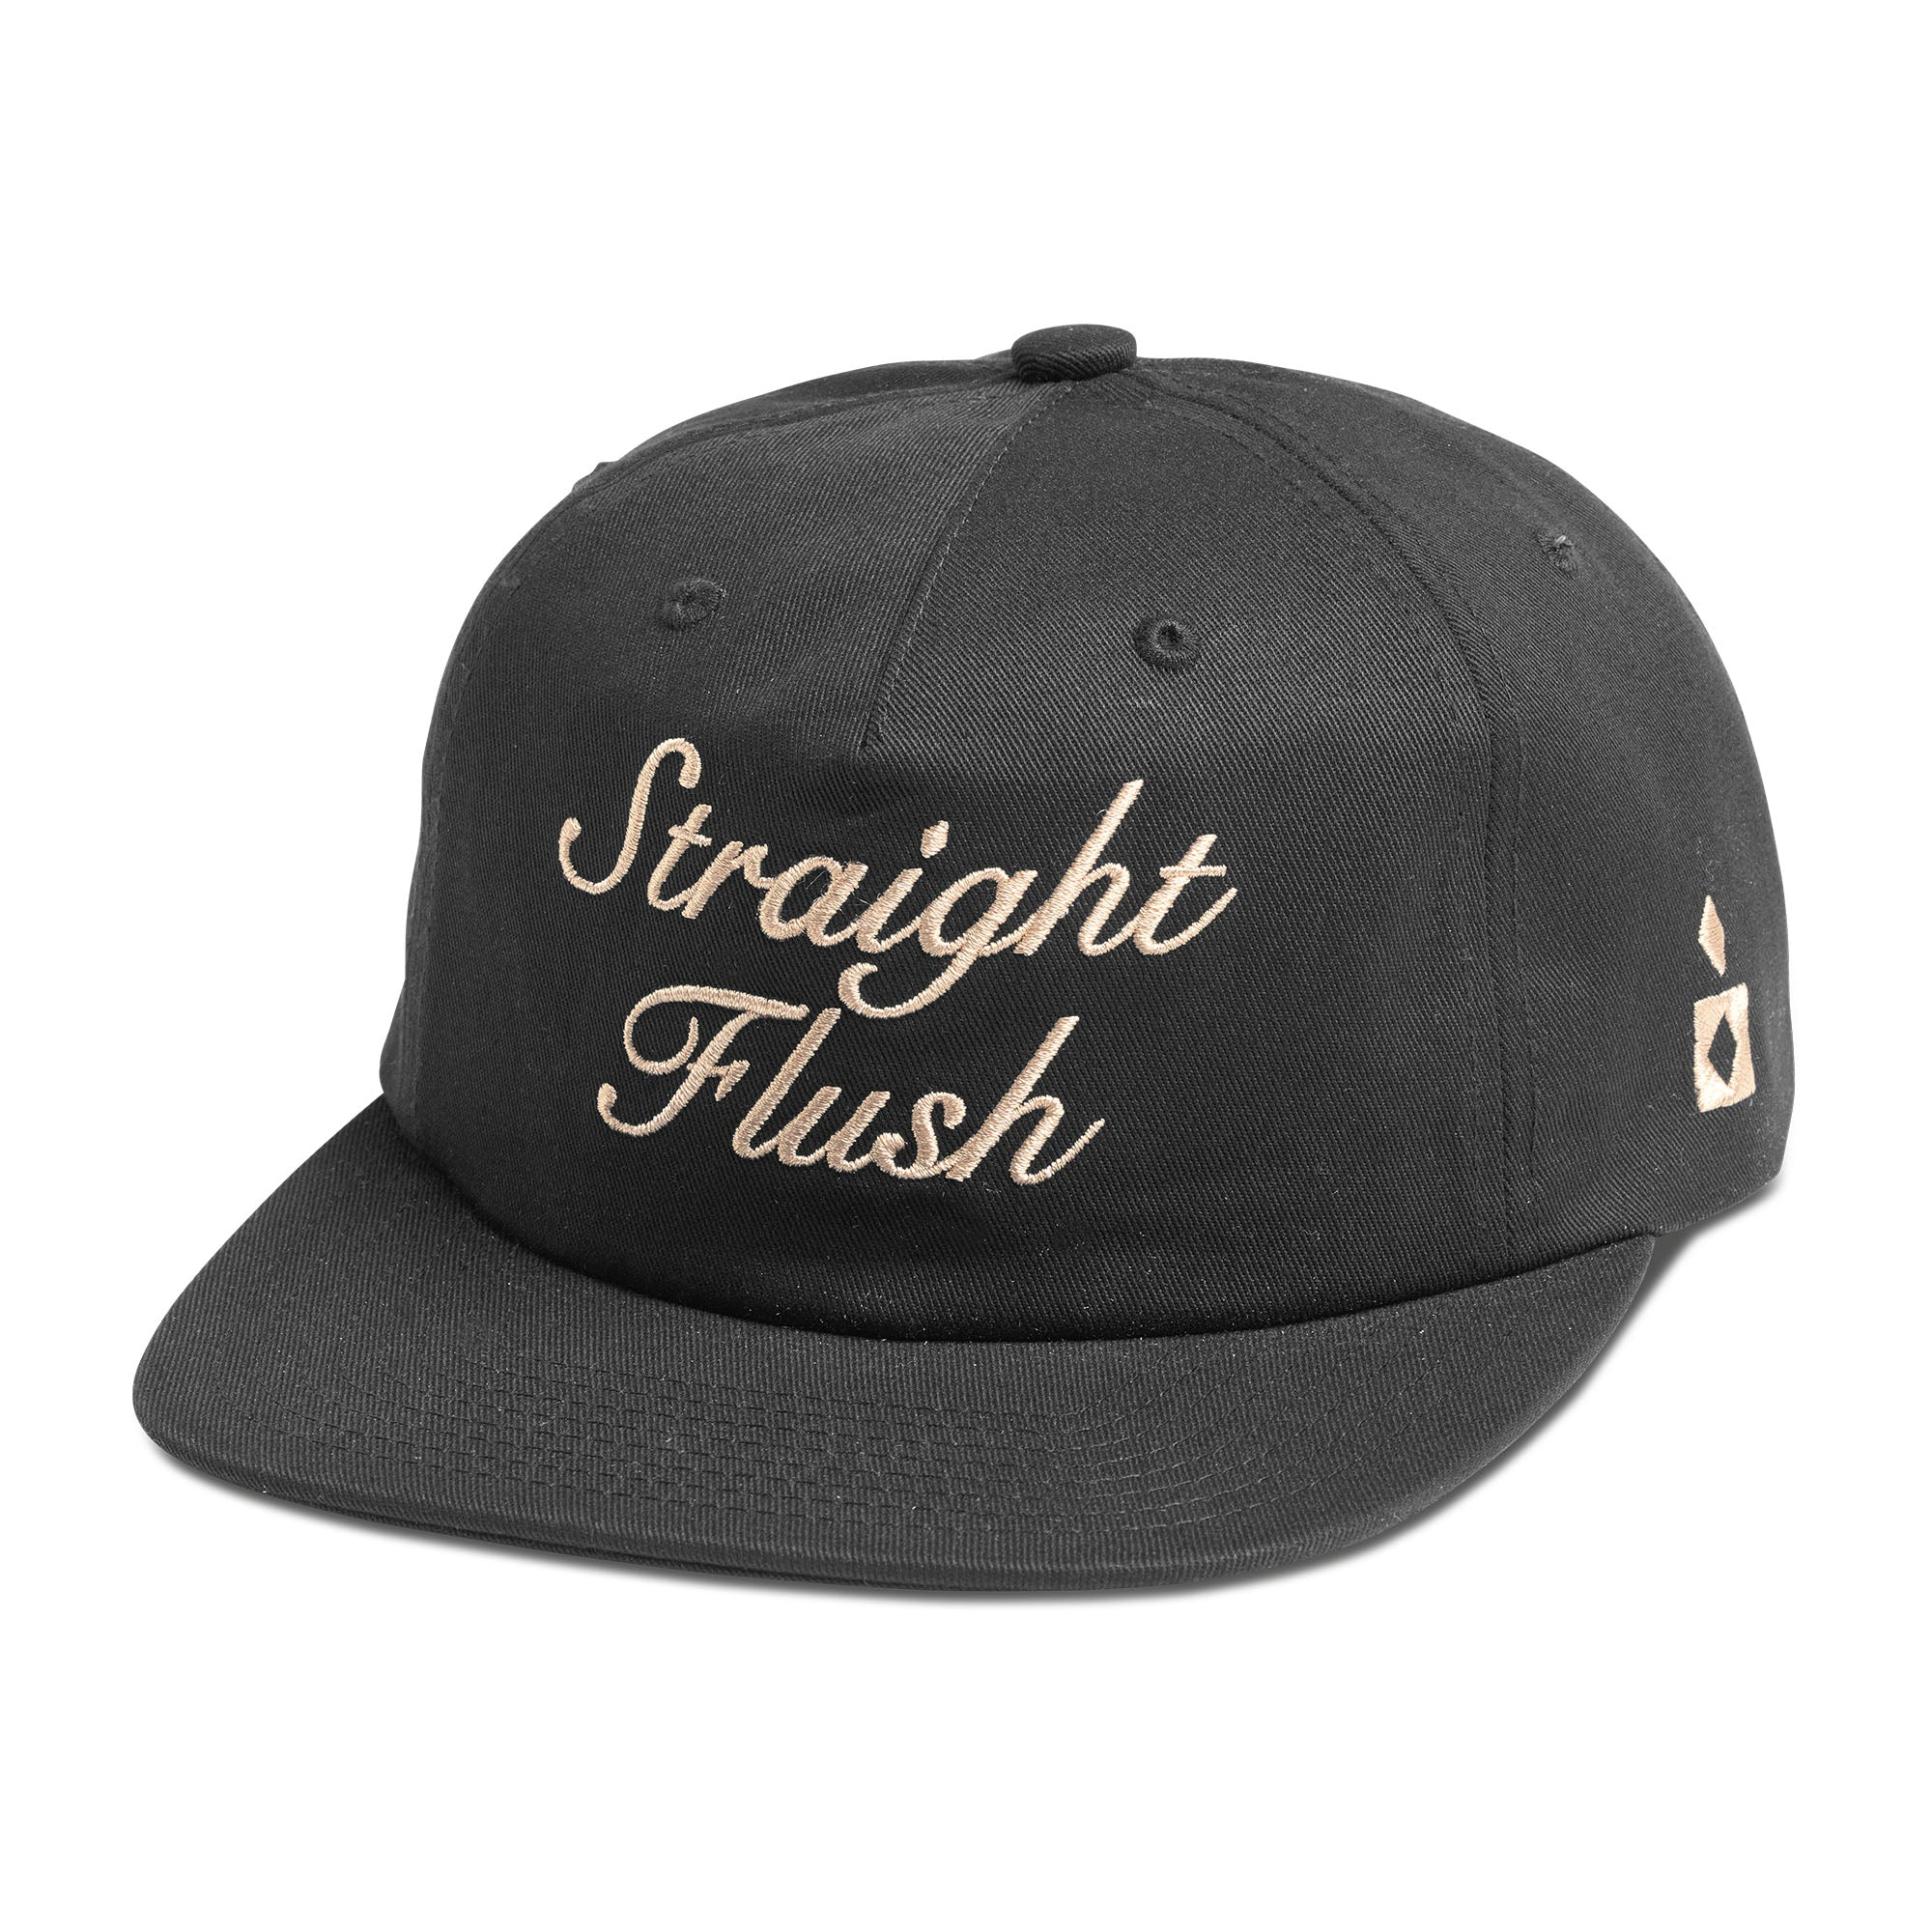 2d01d5fb Straight Flush Hat, Spring 2018 Delivery 1 Headwear - Diamond Supply Co.